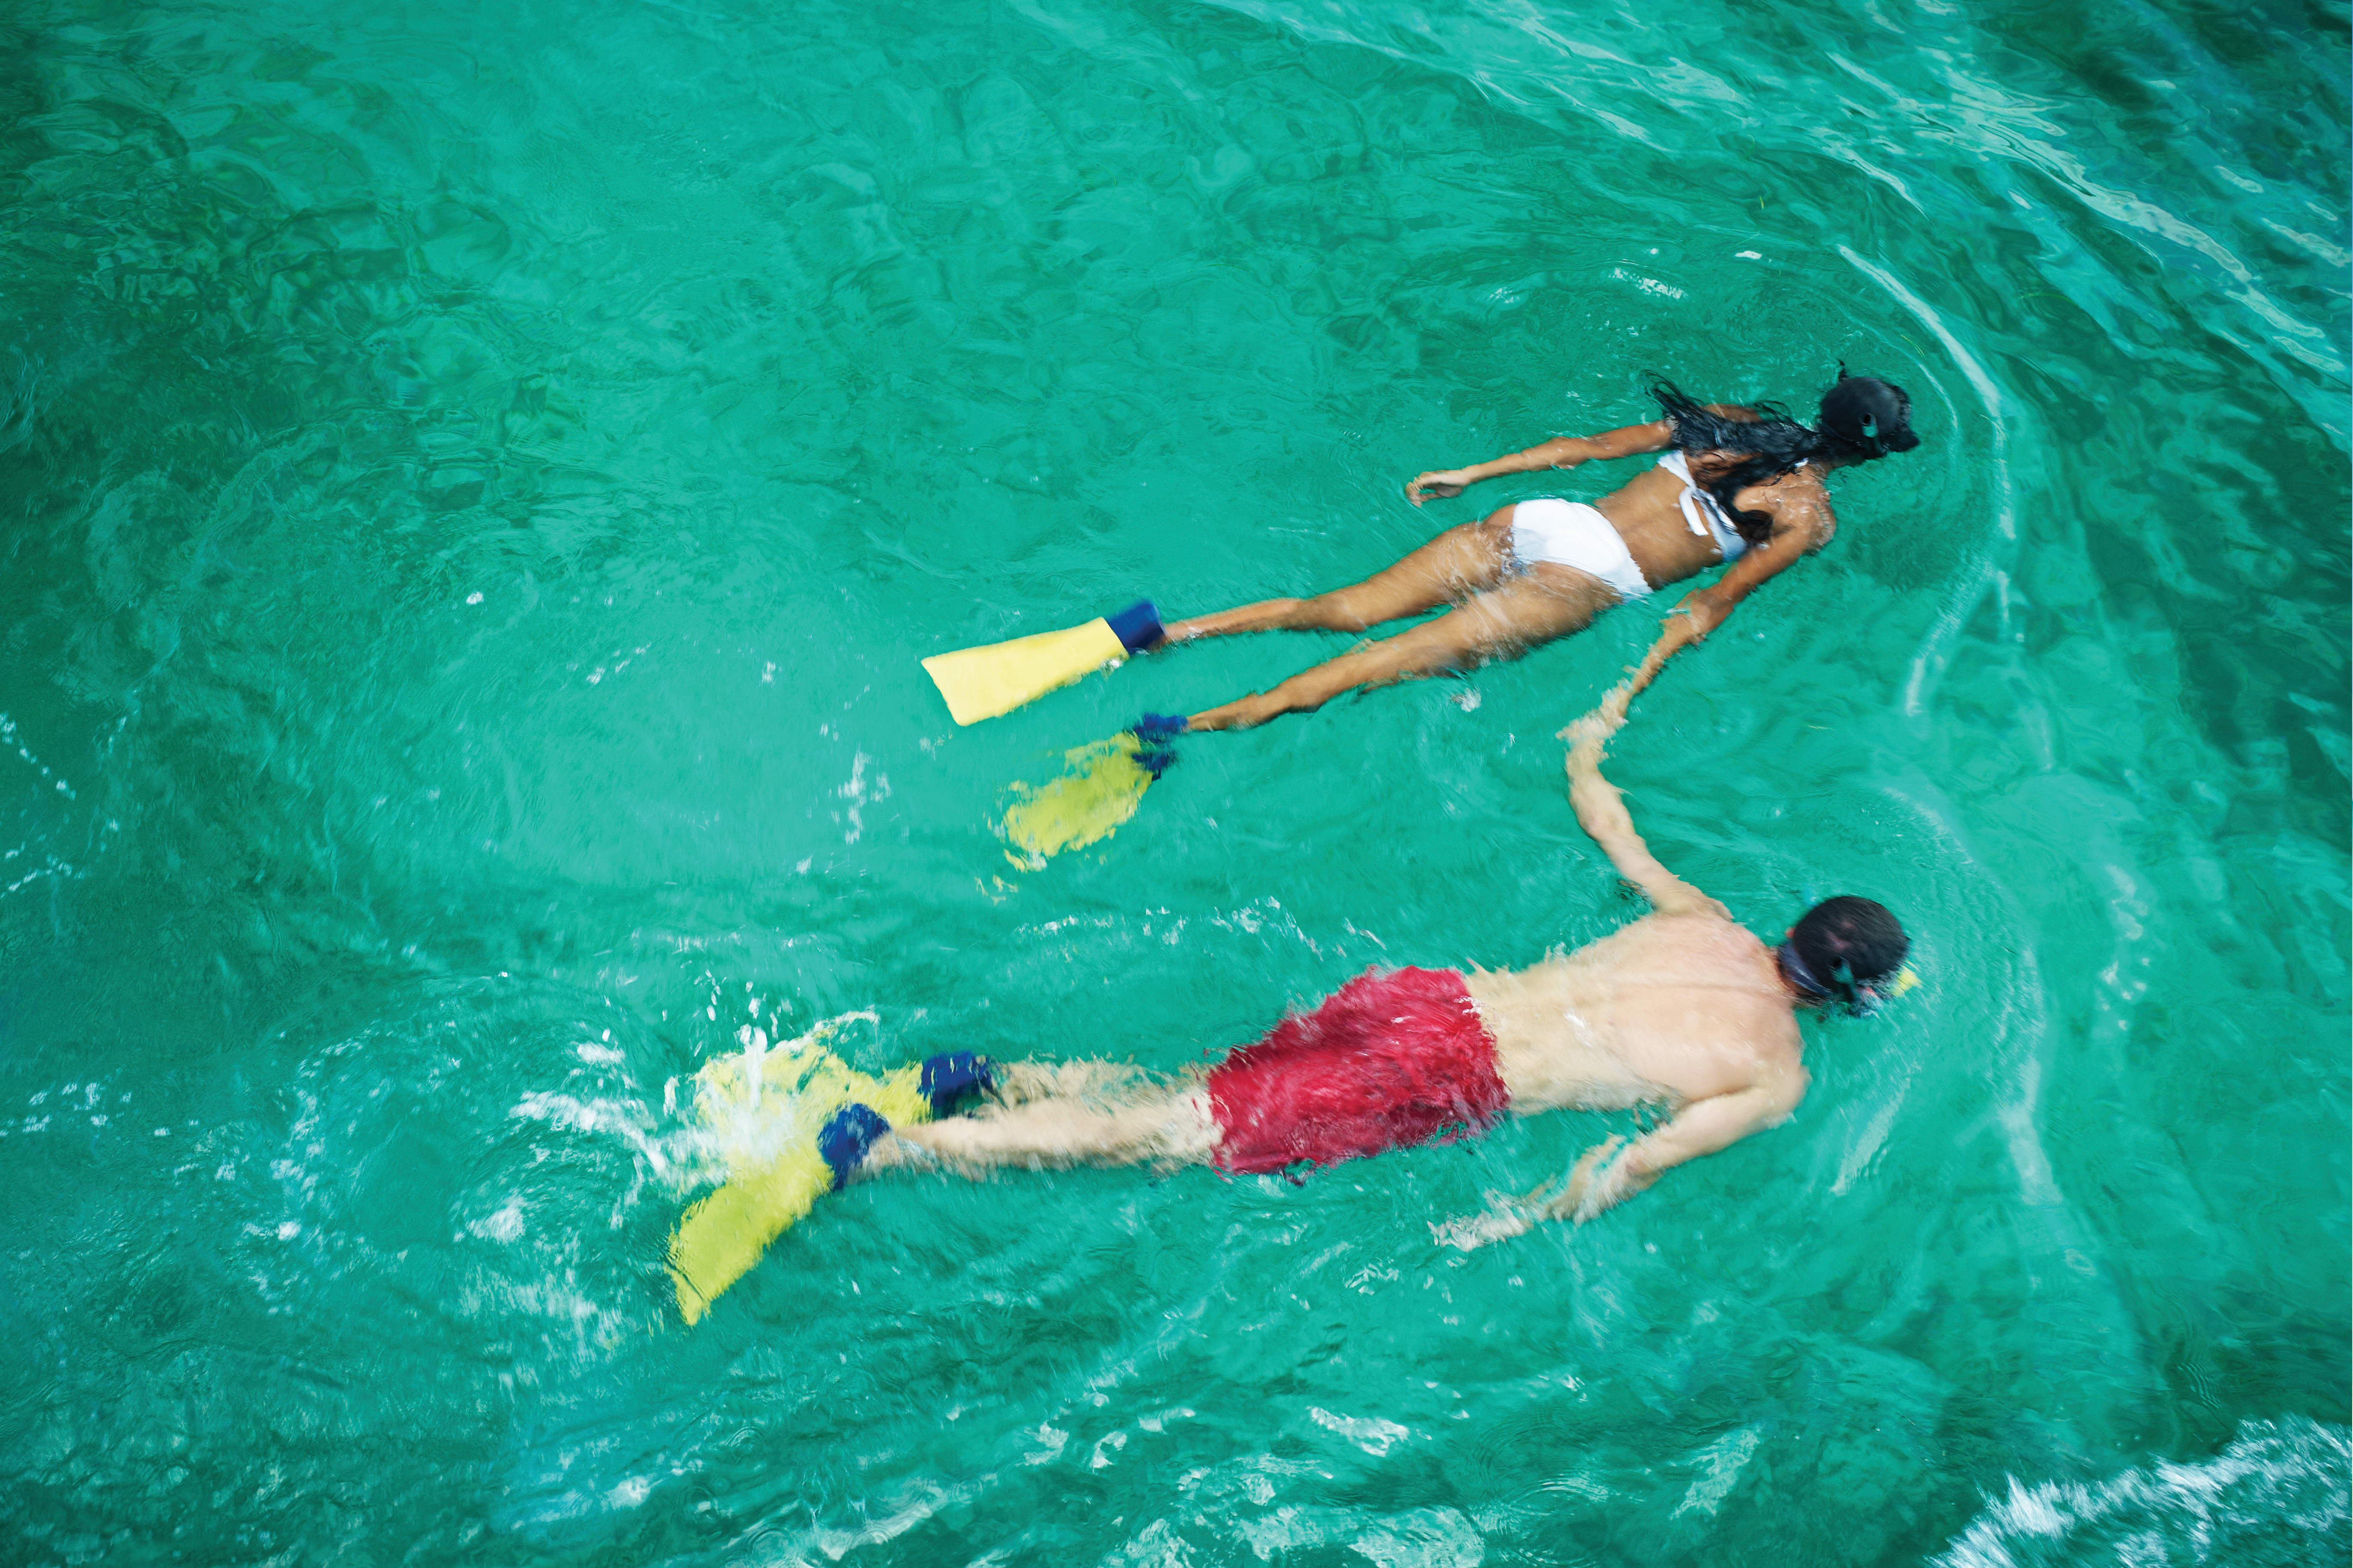 Travel Agency All-Inclusive Resort Couples Swept Away 43